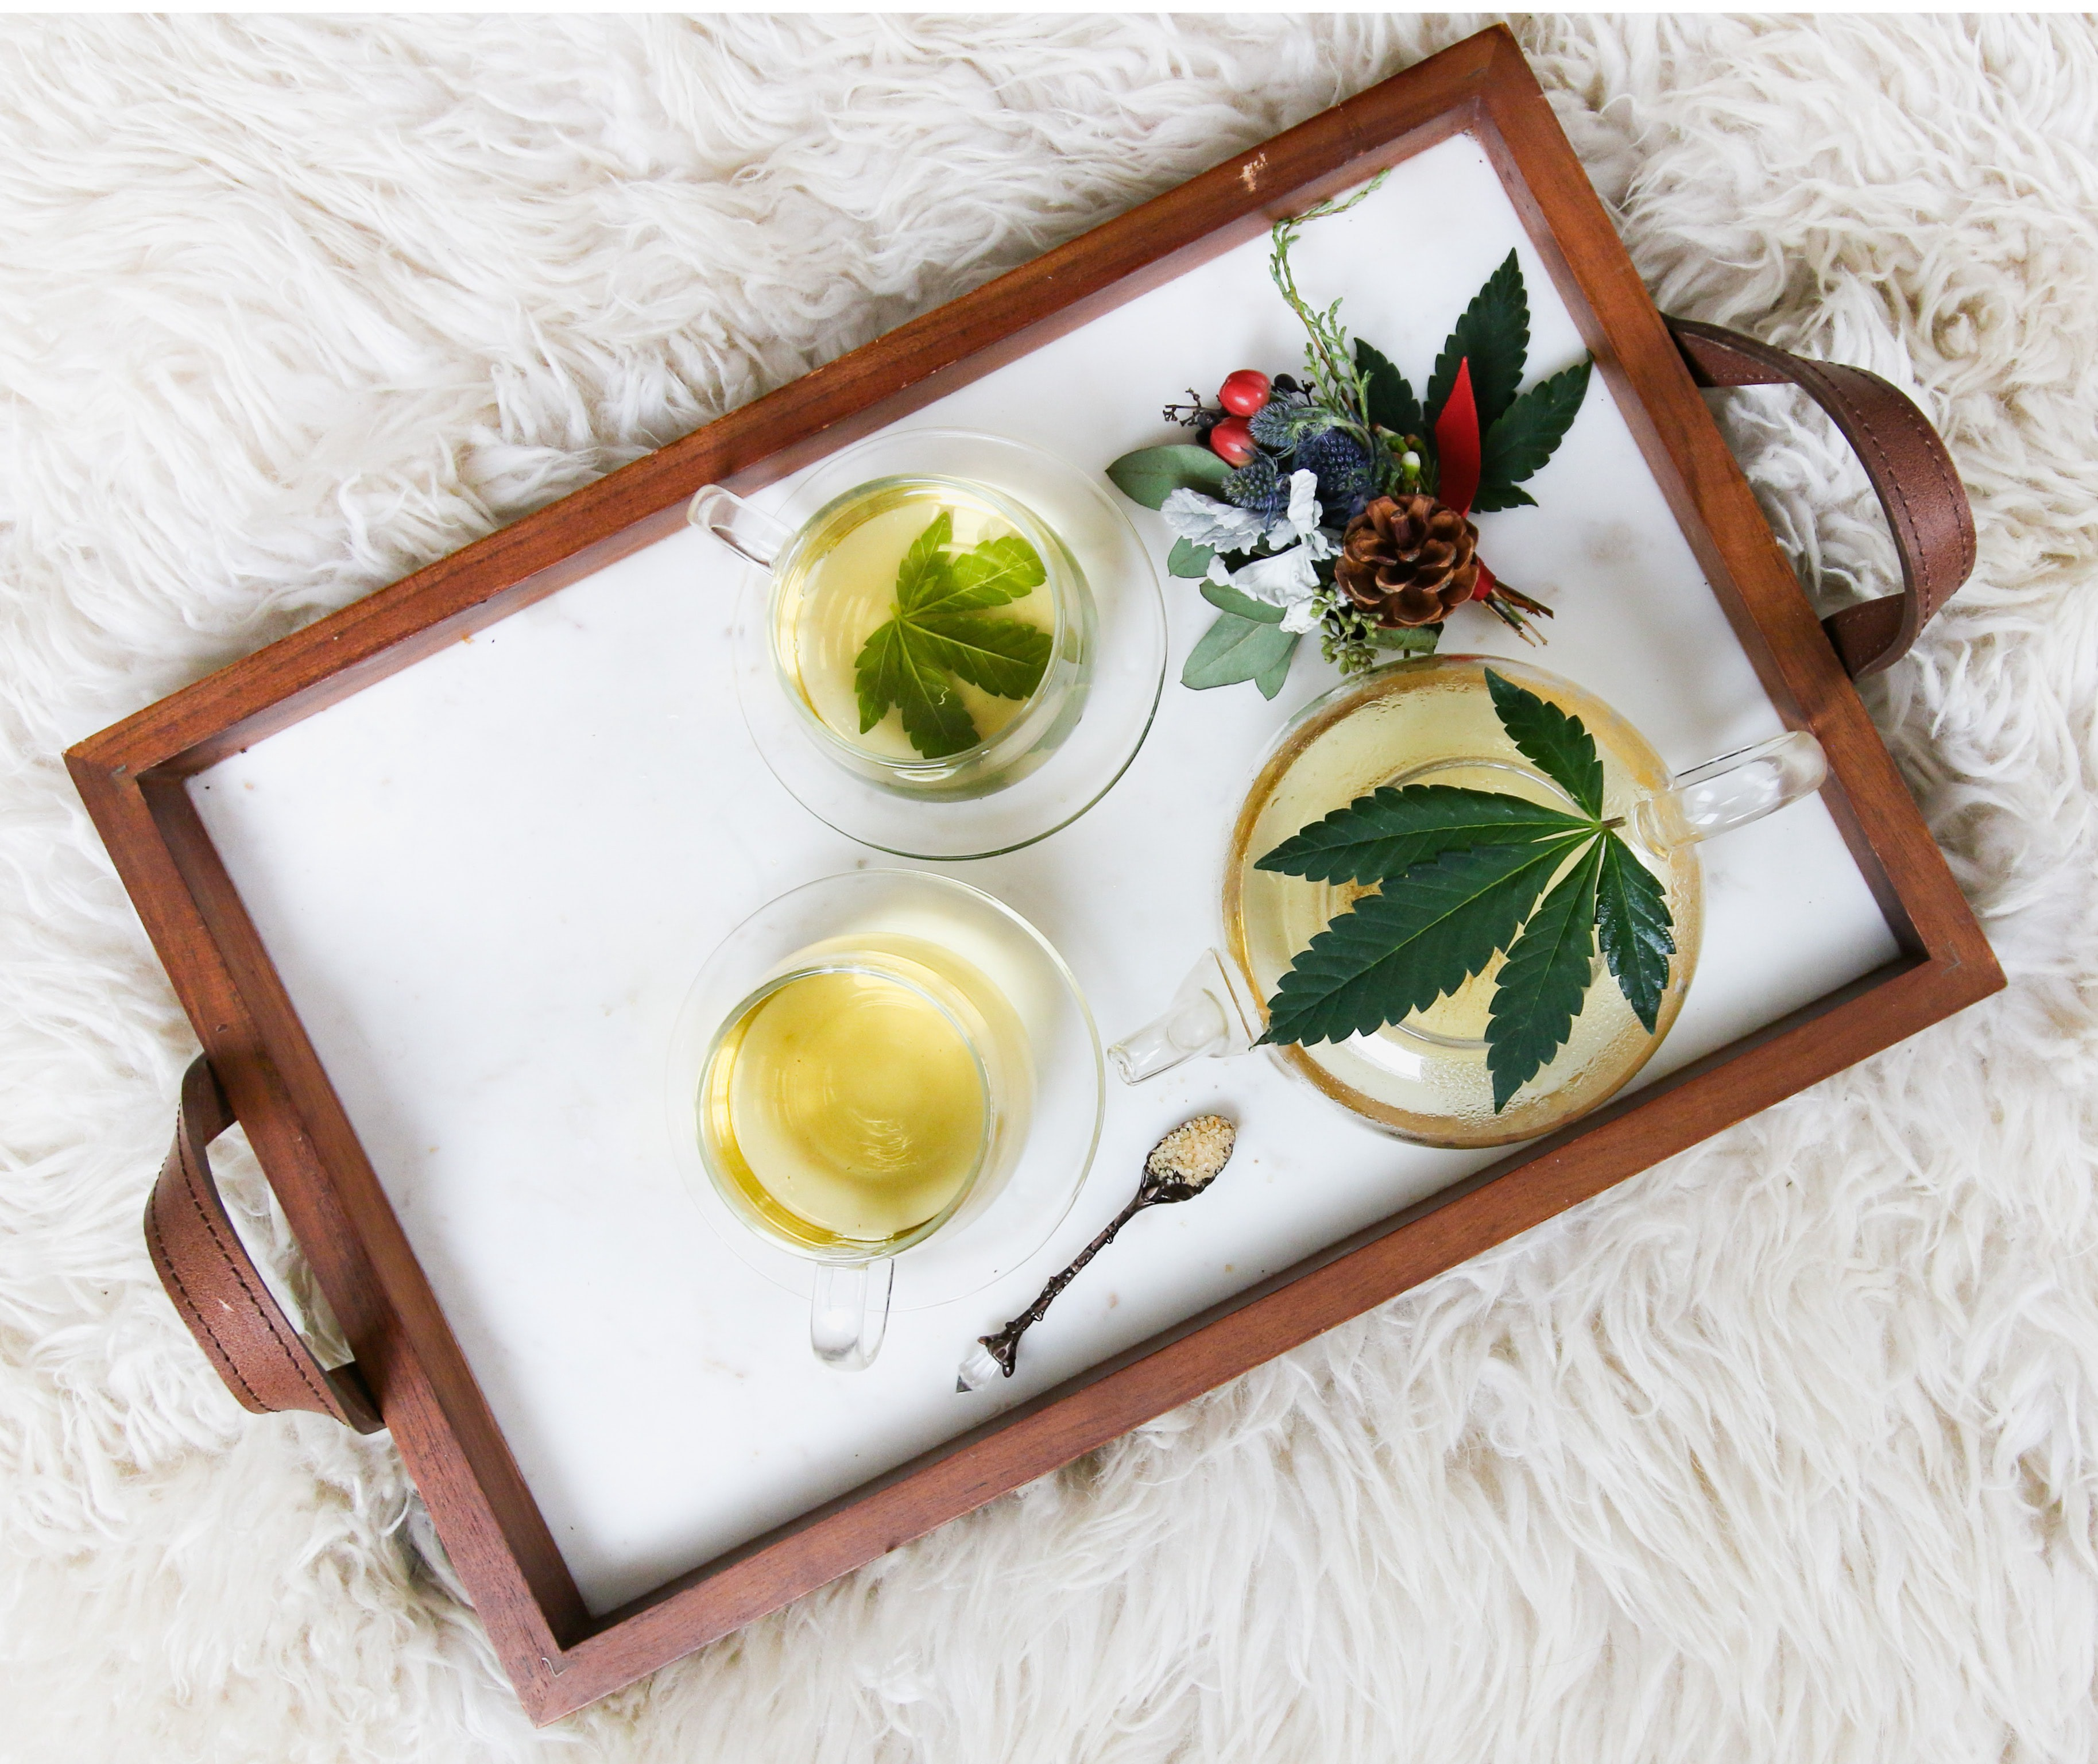 A tray shows tea with cannabis leaves in it.